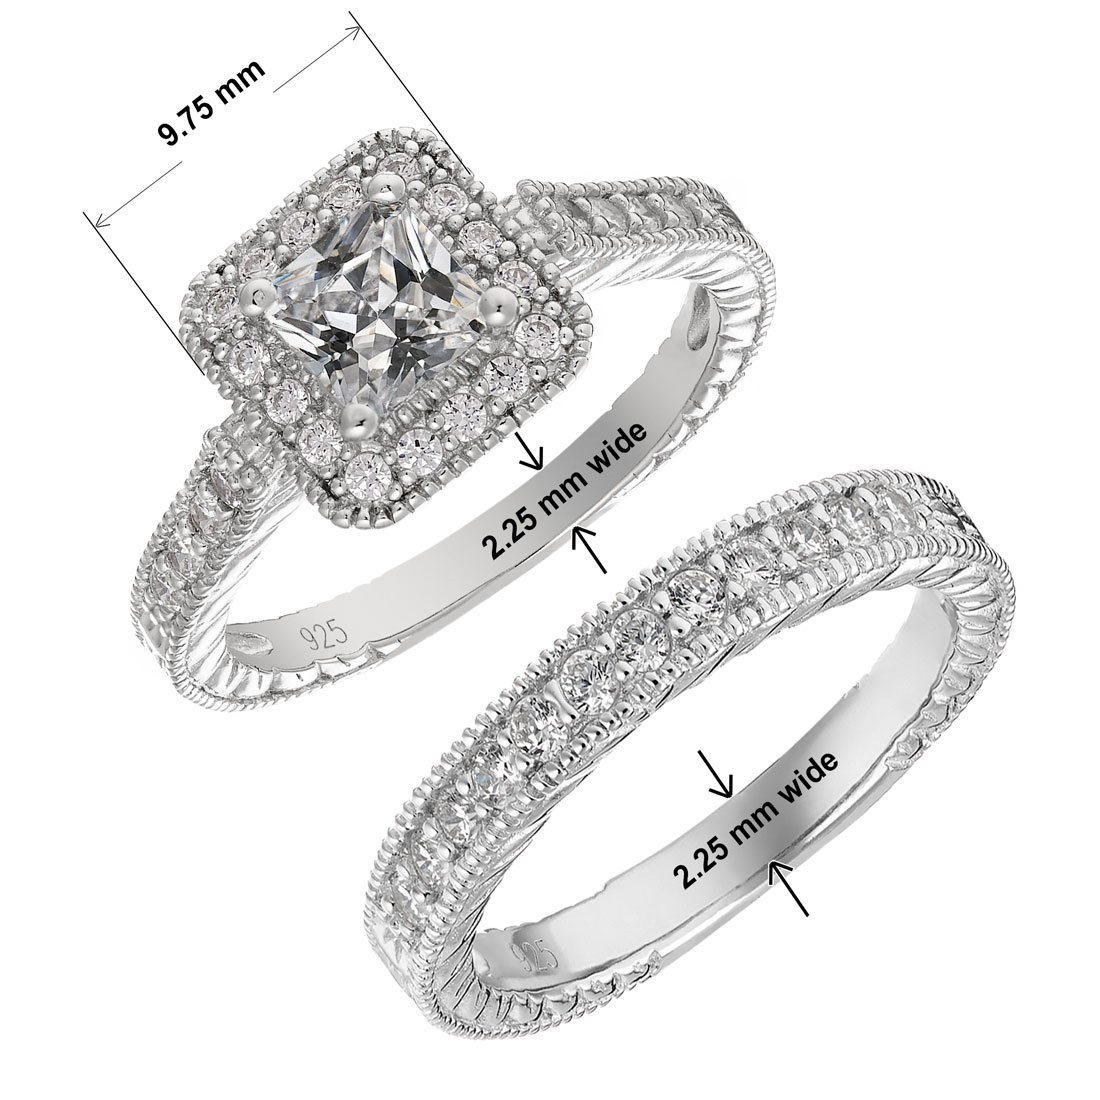 Sterling Silver Engagement Wedding Ring Set Princess Cut Cubic Zirconia CZ 1.1 ct.tw - Nickel Free [Size 9]